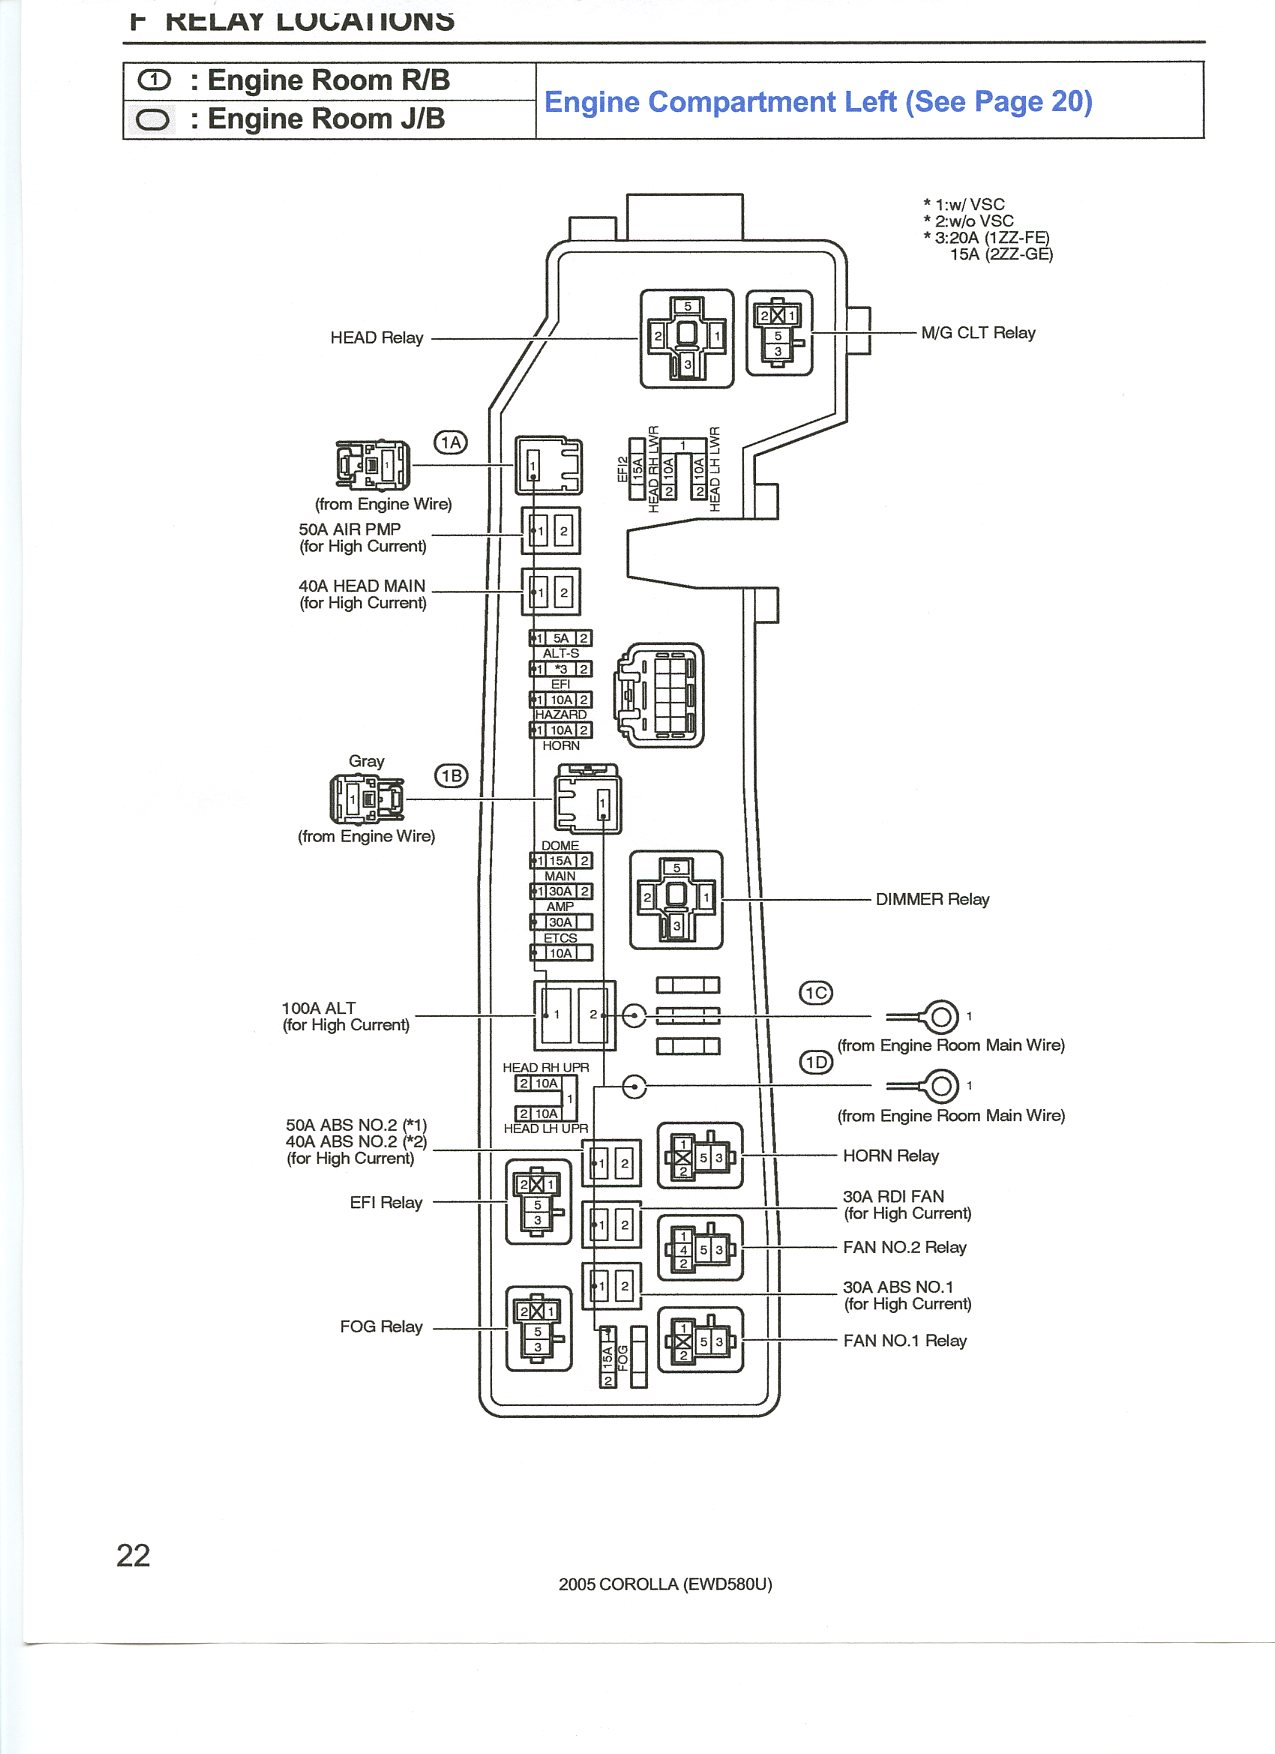 2006 Toyota Corolla Fuse Box Diagram Electrical Schematics 2000 Tundra 2003 Detailed Schematic Diagrams Bmw 750li